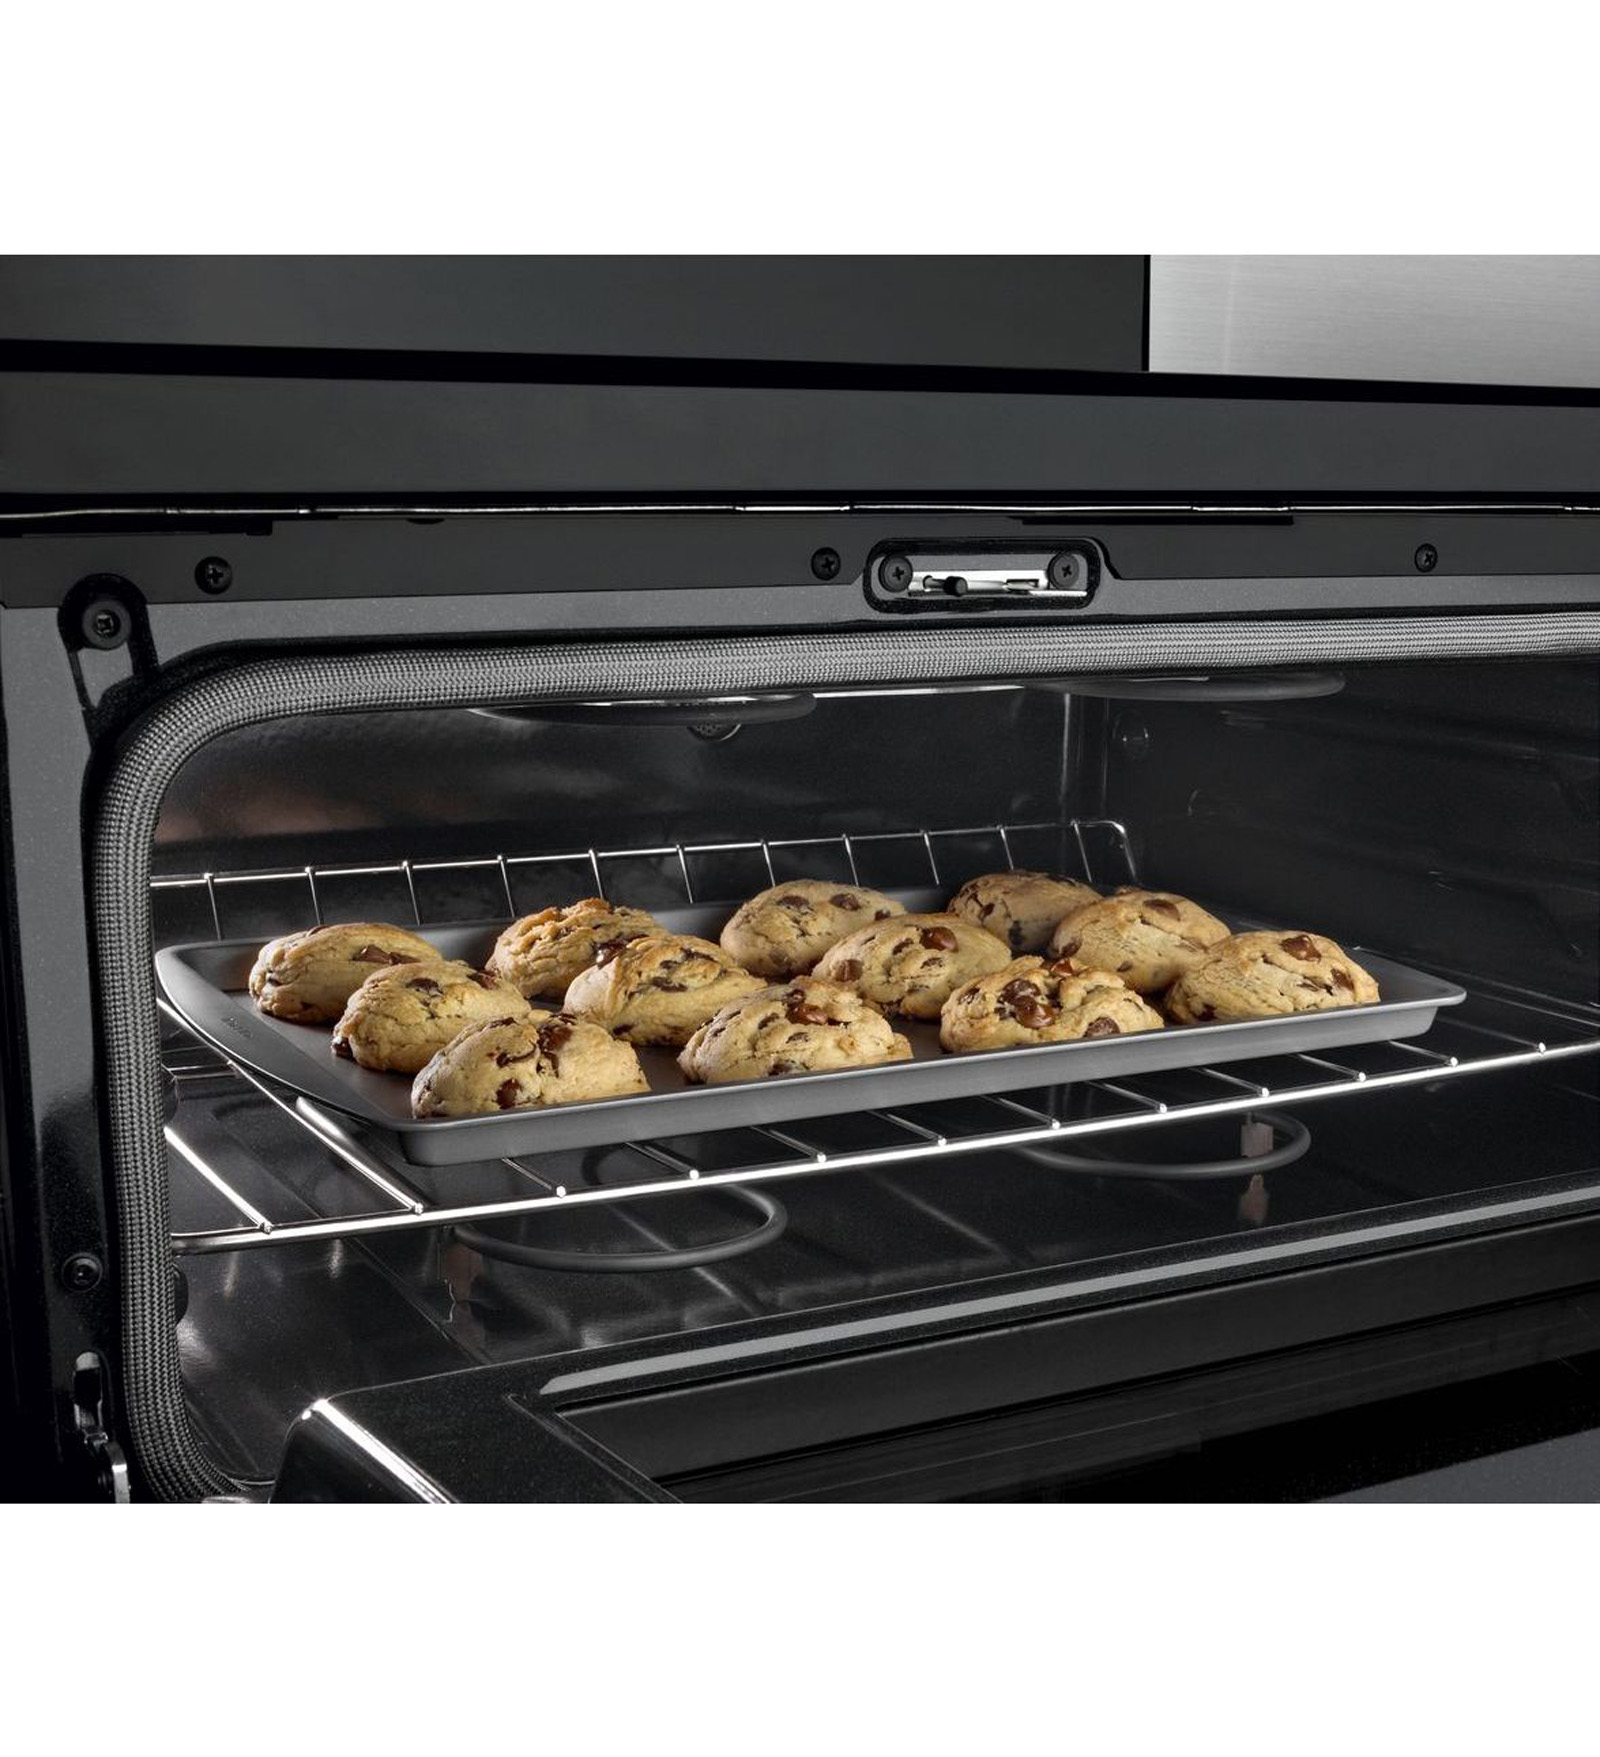 Whirlpool 6.7 cu. ft. Electric Range w/ AccuBake® System - Stainless Steel